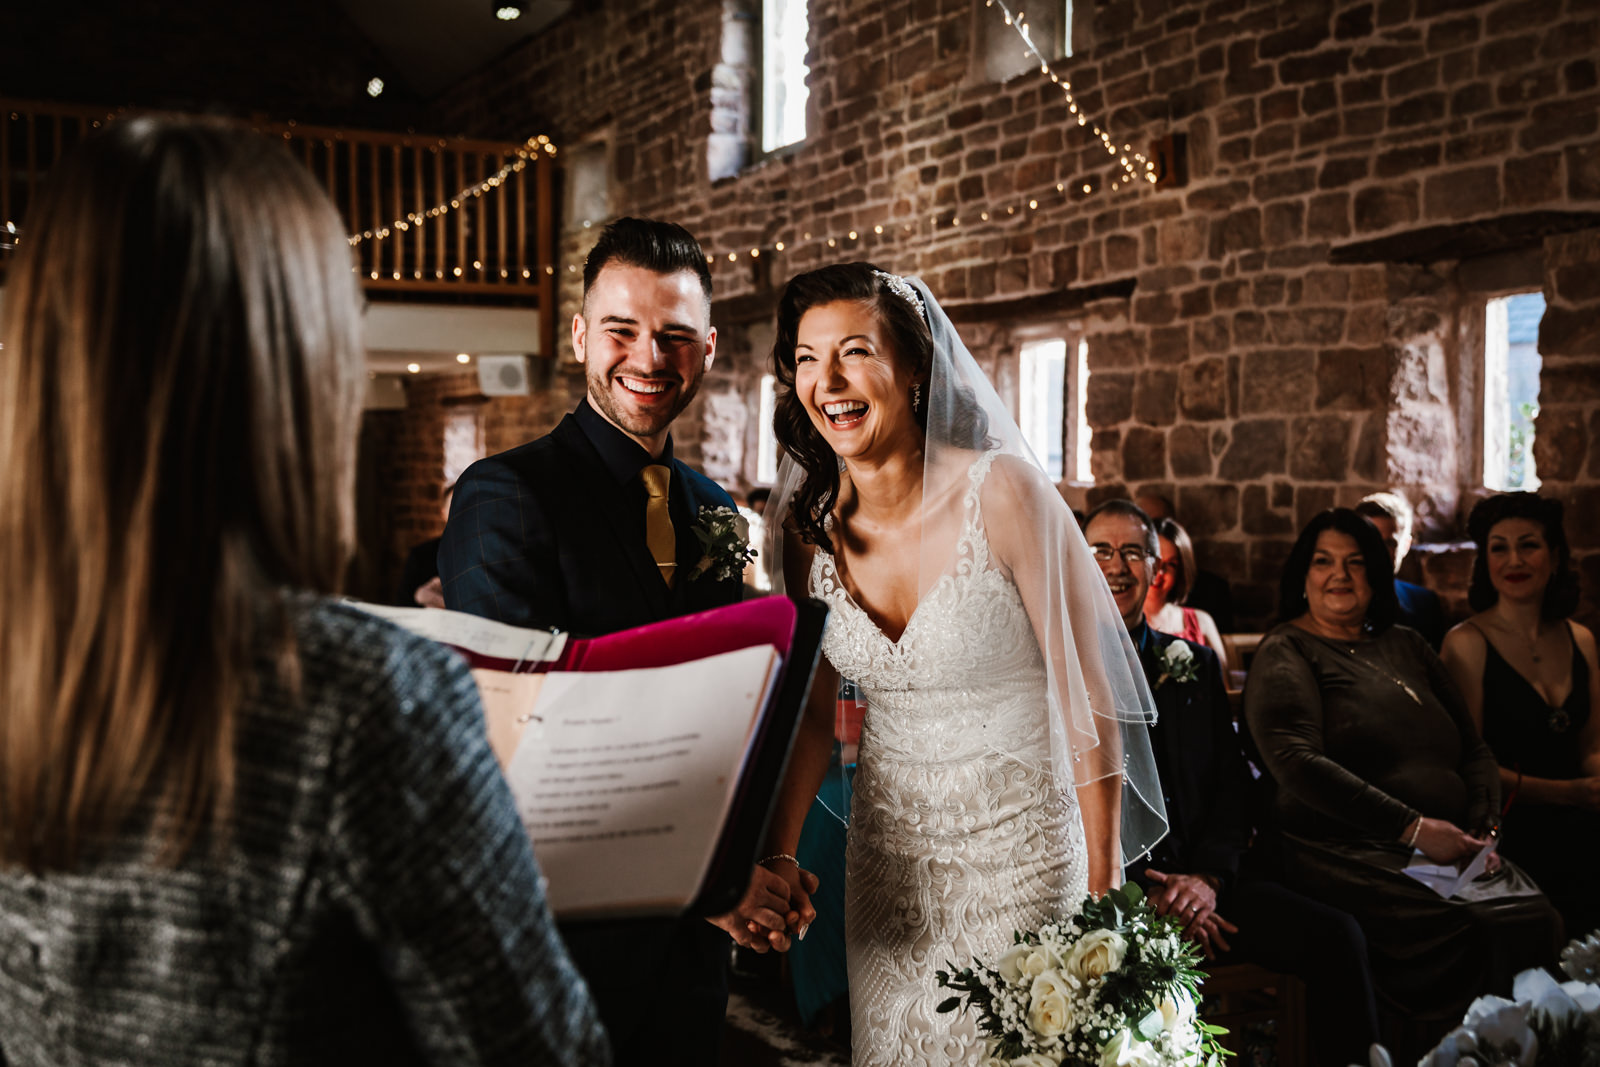 Bride and groom during the ceremony at The Ashes Barns